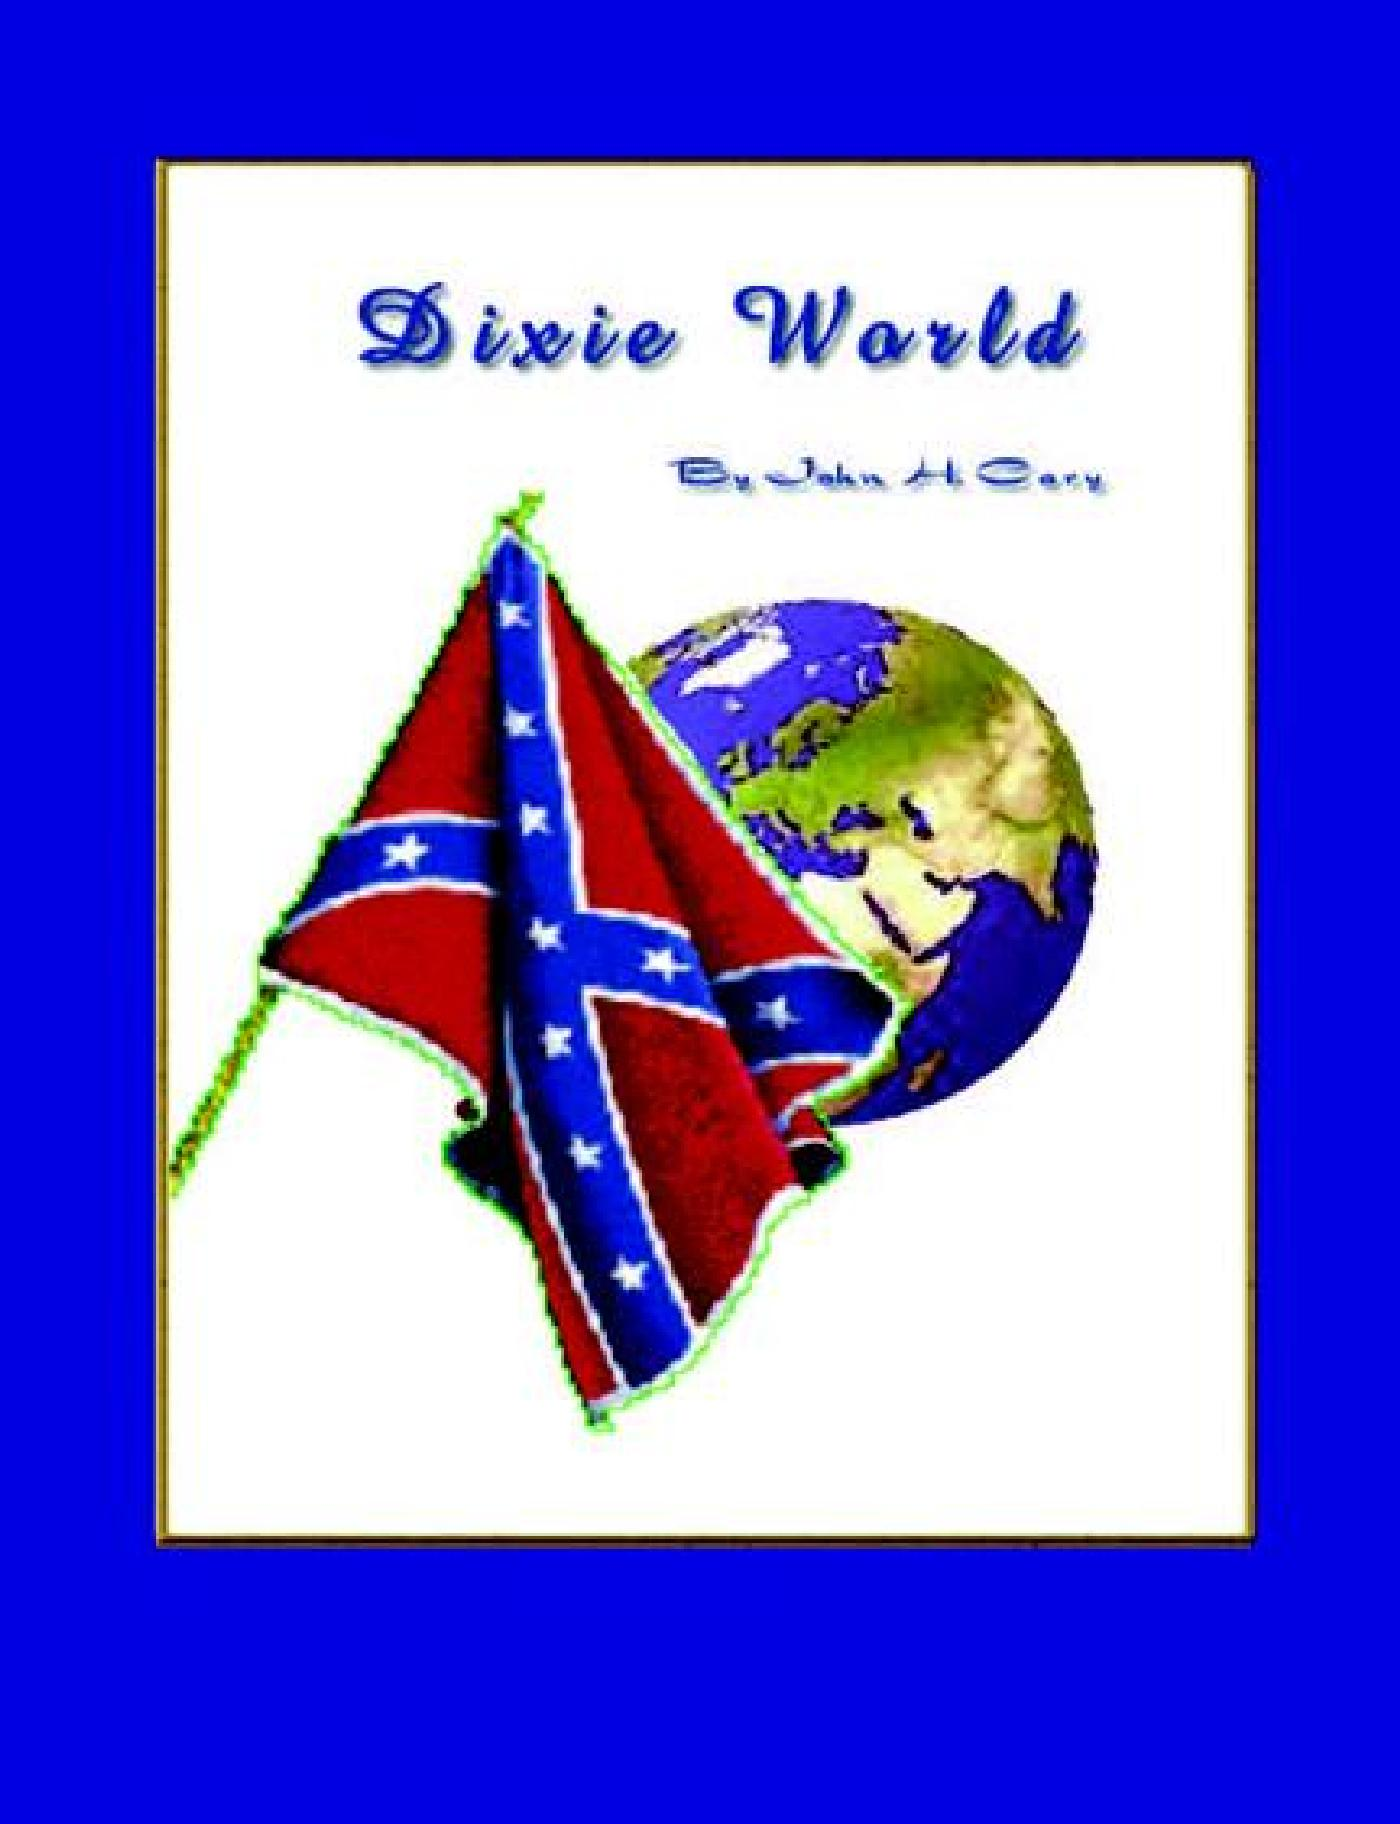 DIXIE WORLD